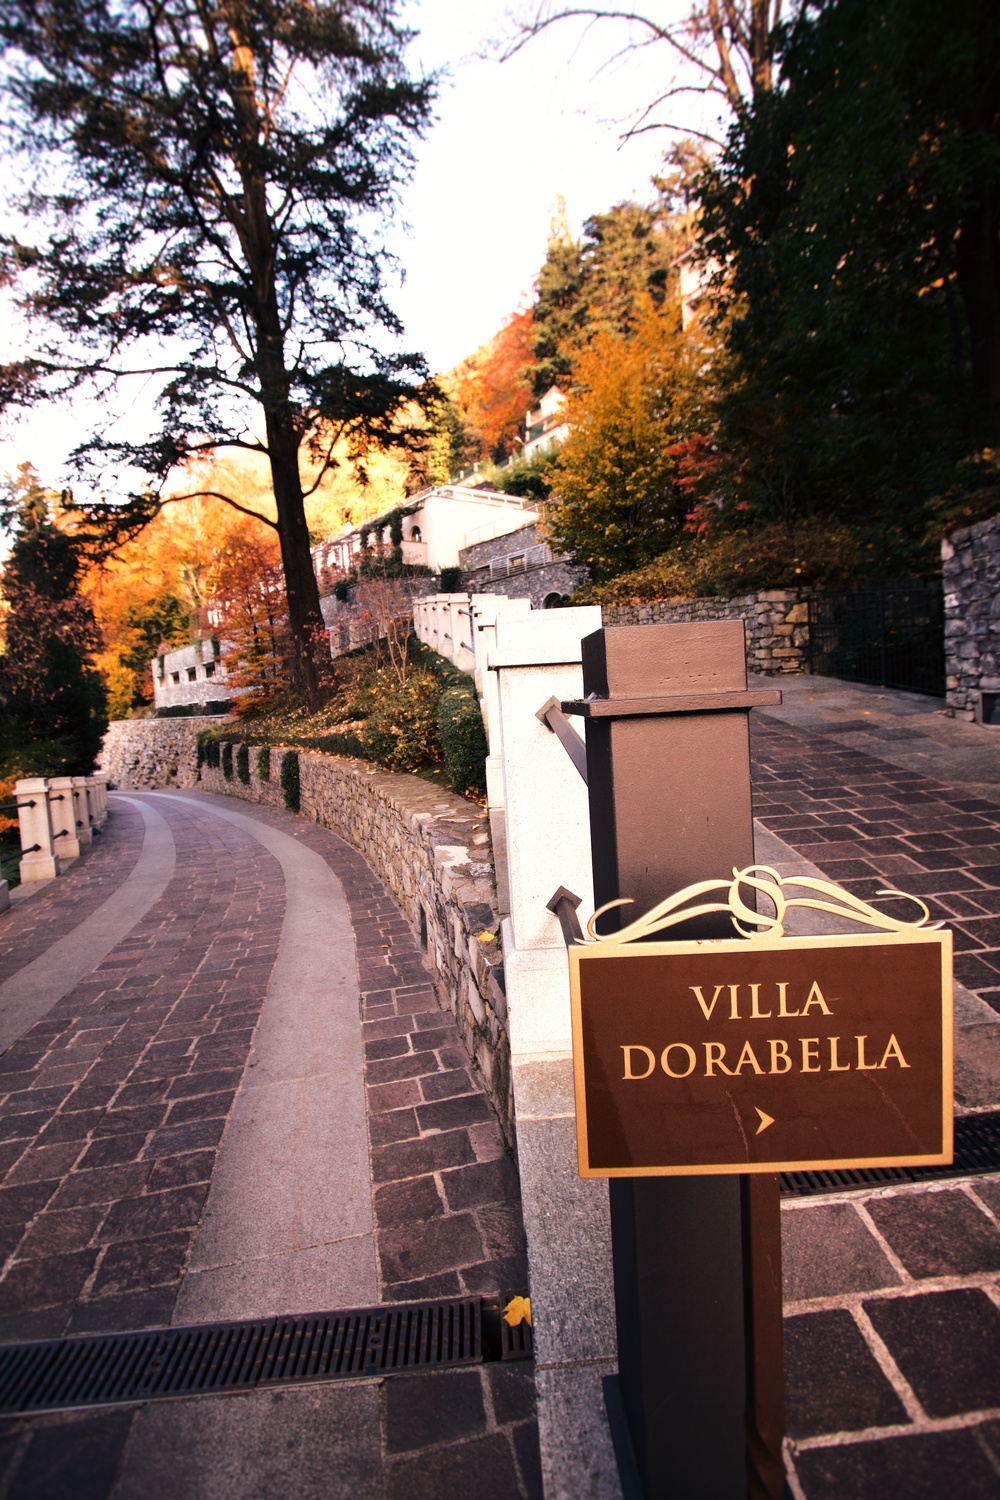 Path up to Villa Dorabella